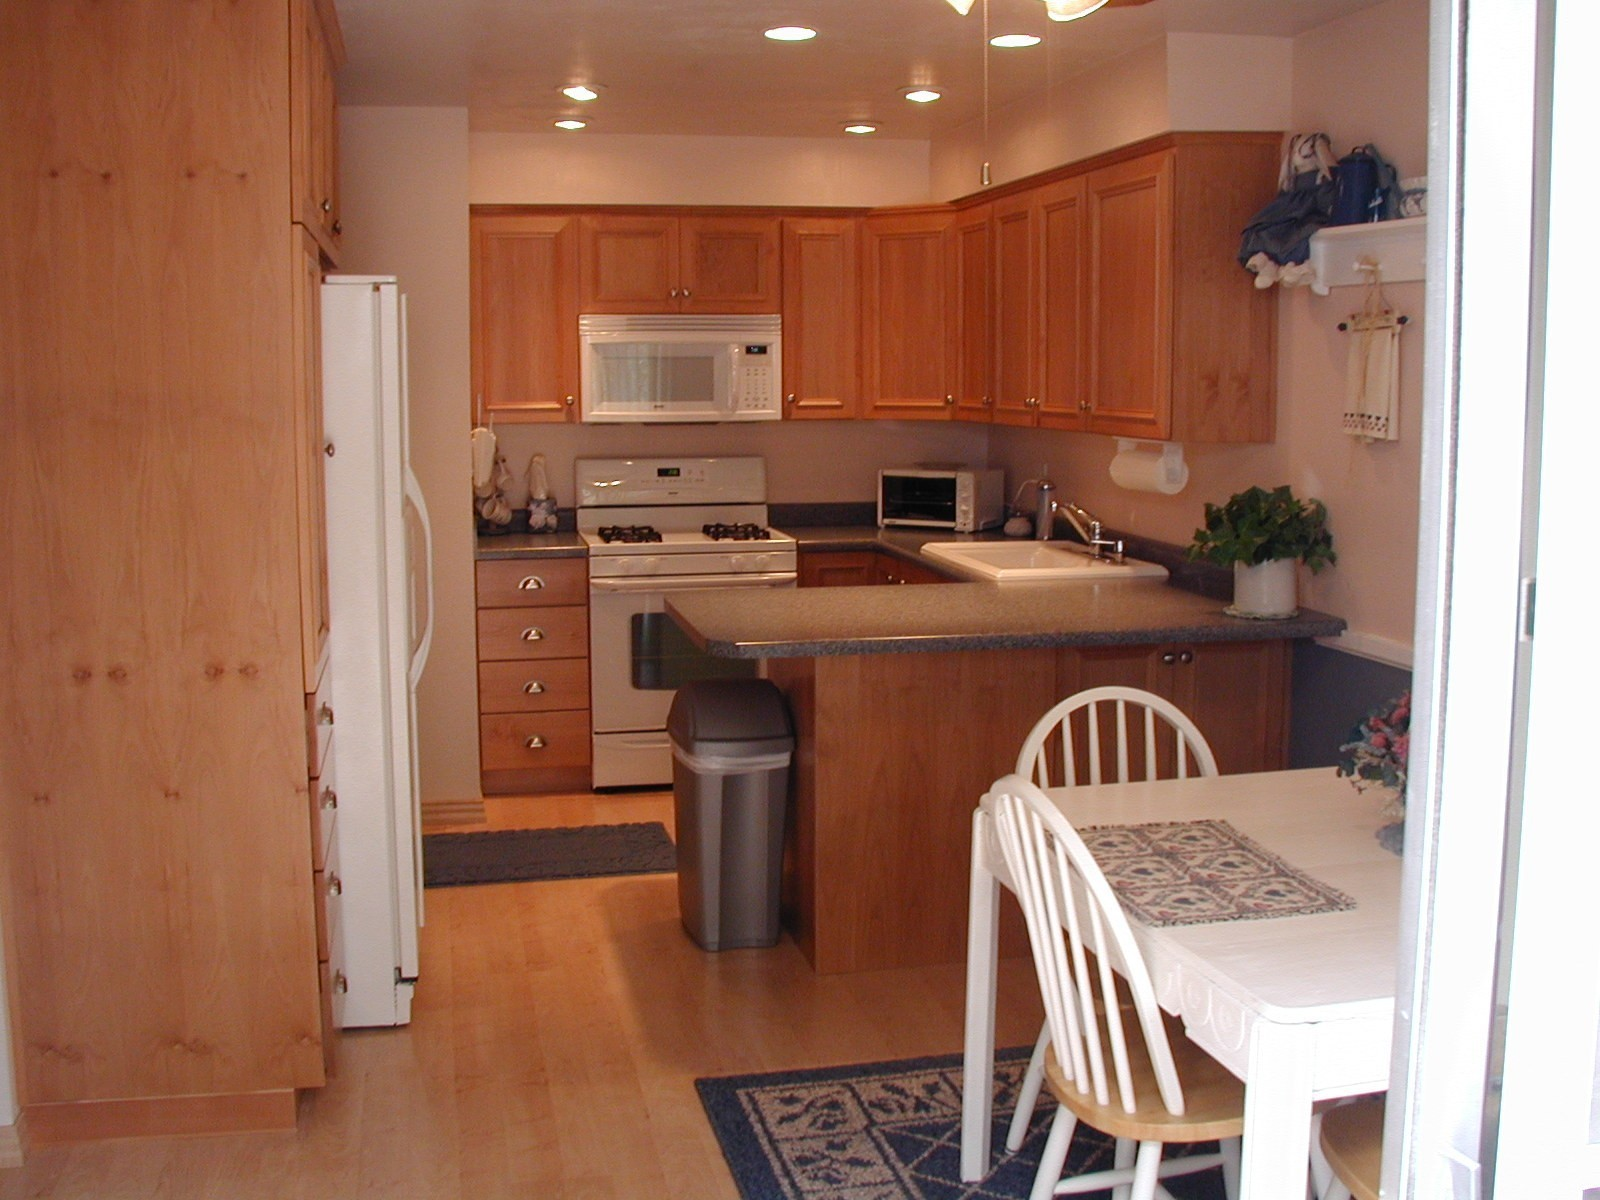 Kitchens Without Islands lighting in kitchen with no island? (floor, paneling, countertops